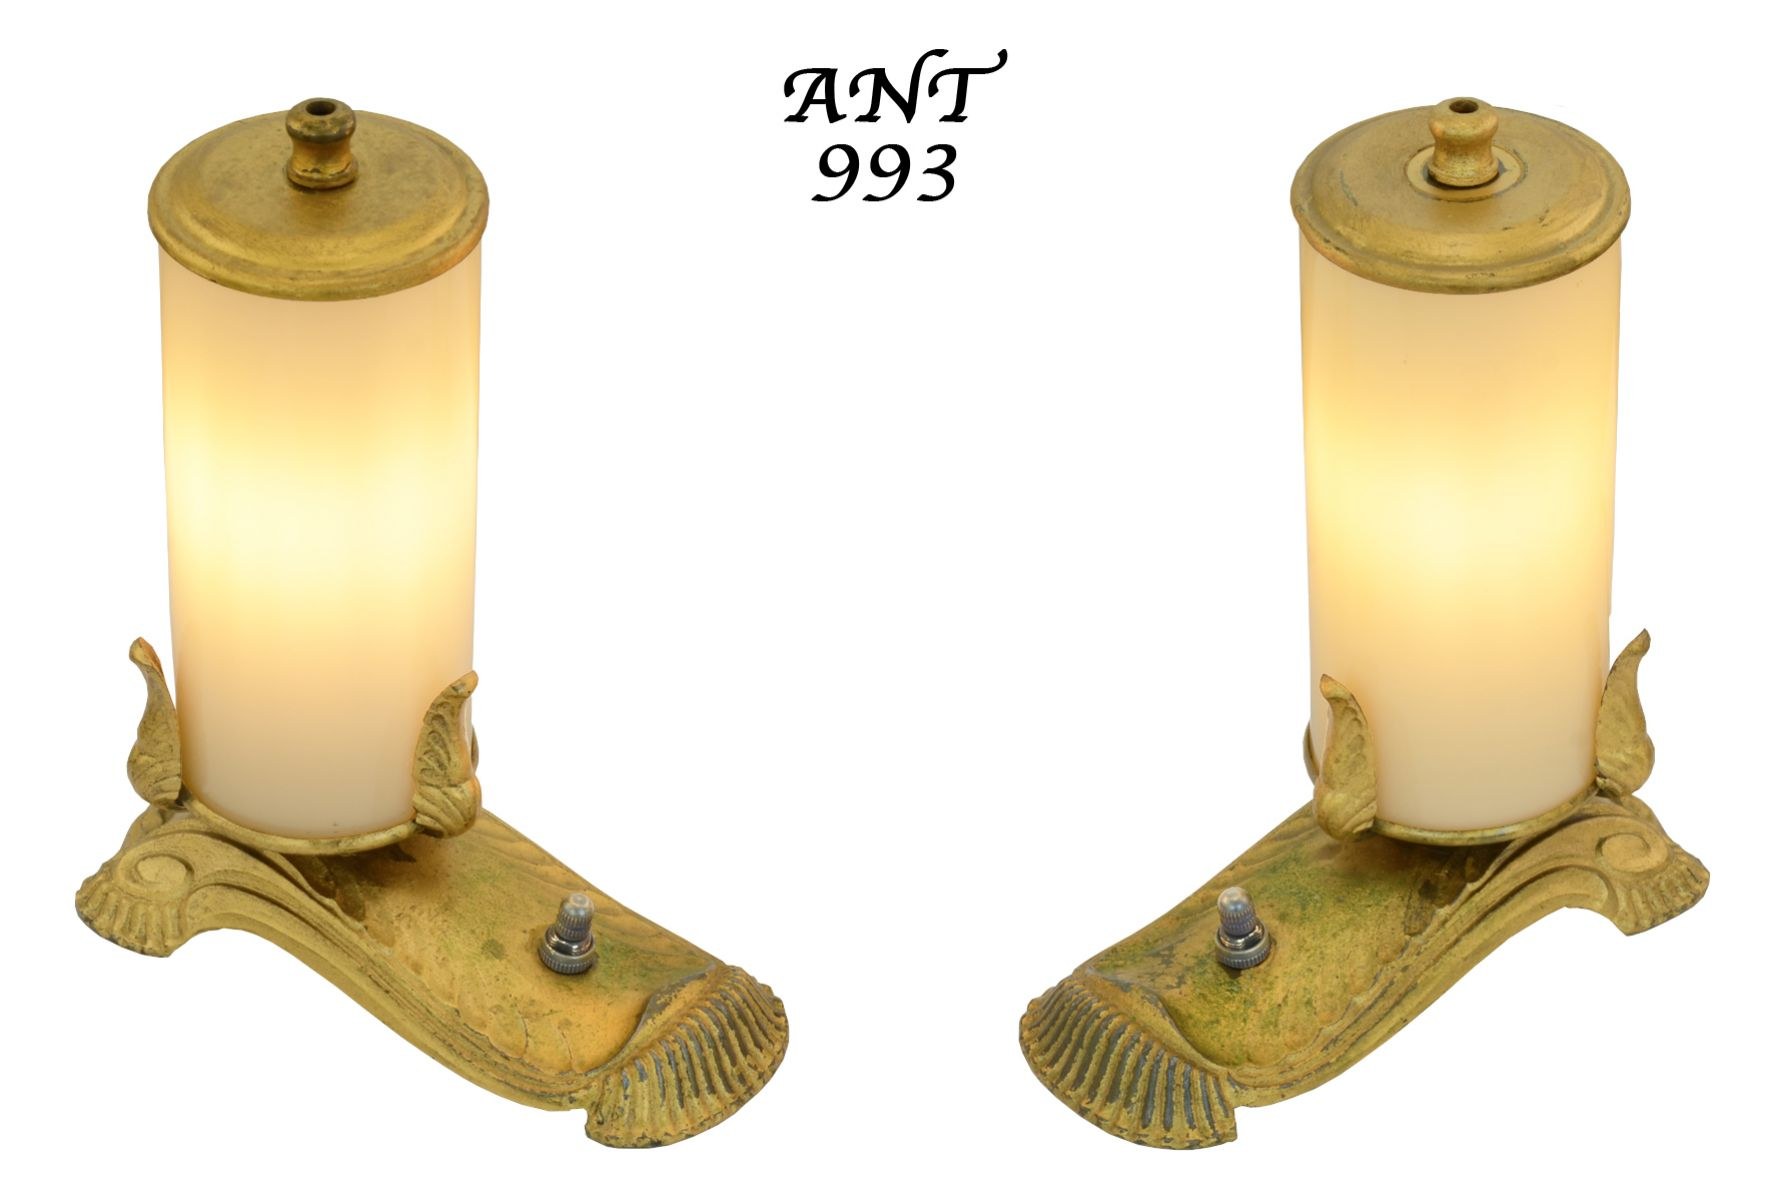 unusual edwardian style small accent table lights ant 993